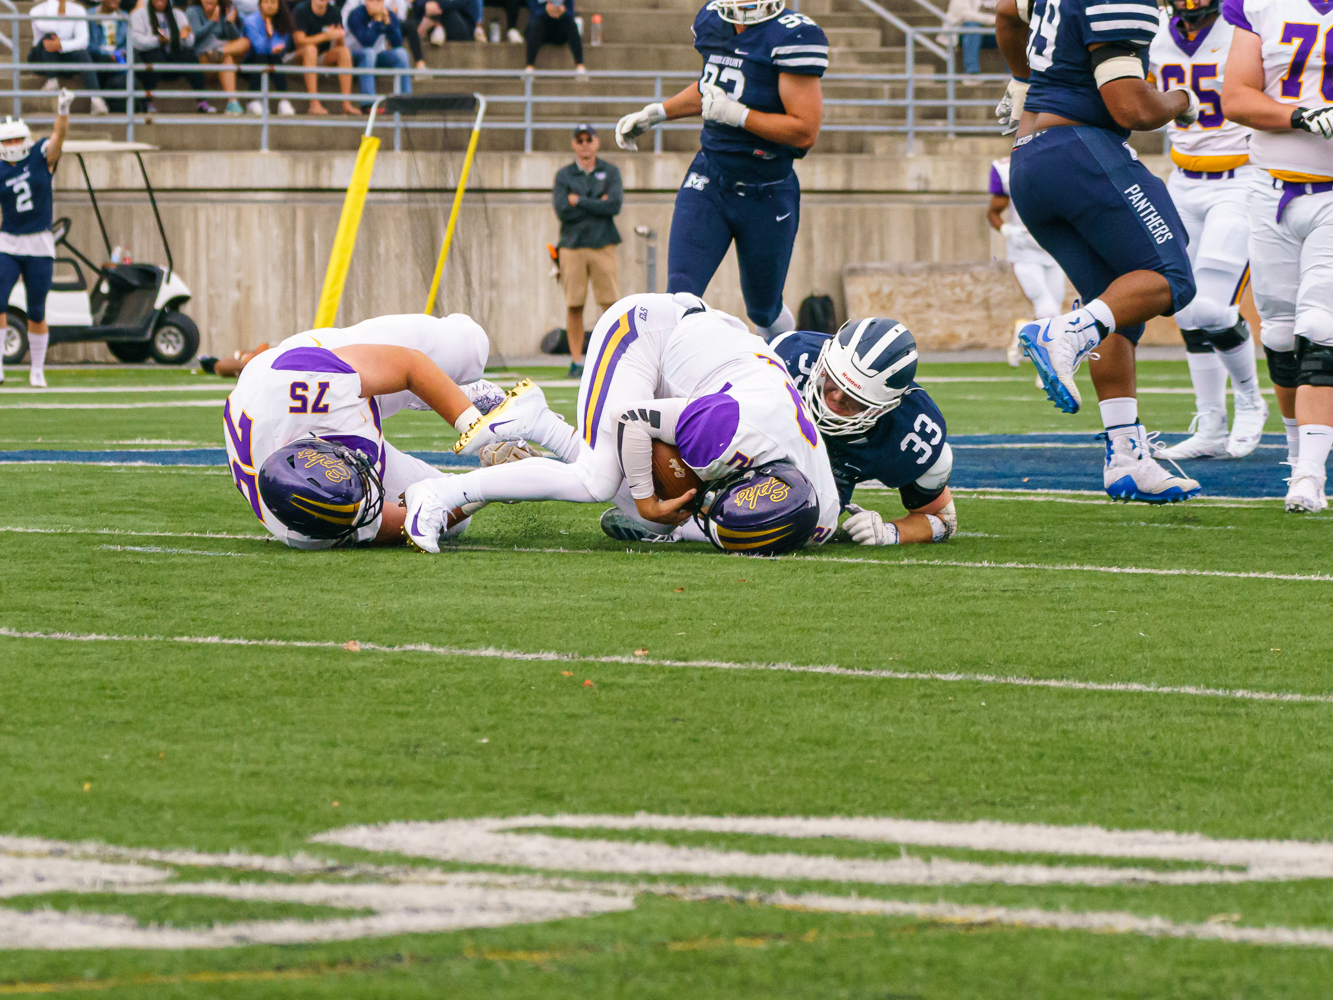 Middlebury Football vs. Williams